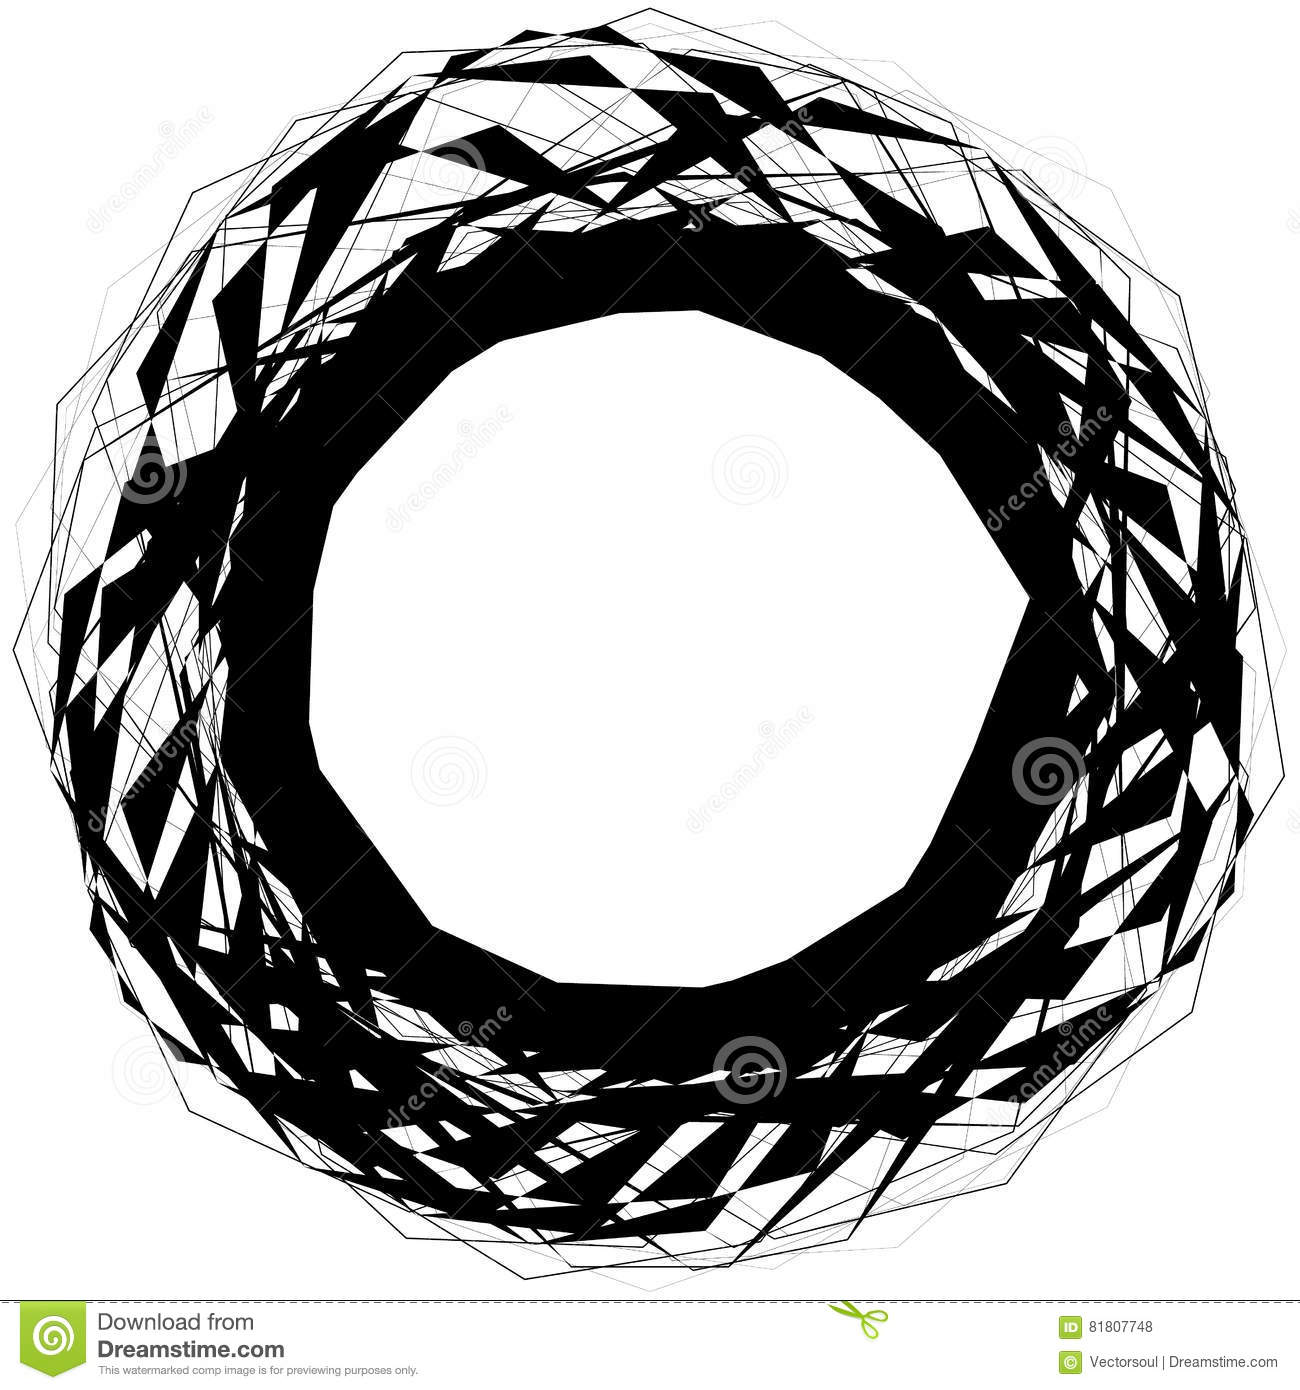 Abstract edgy circular shape, element isolated on white. Random